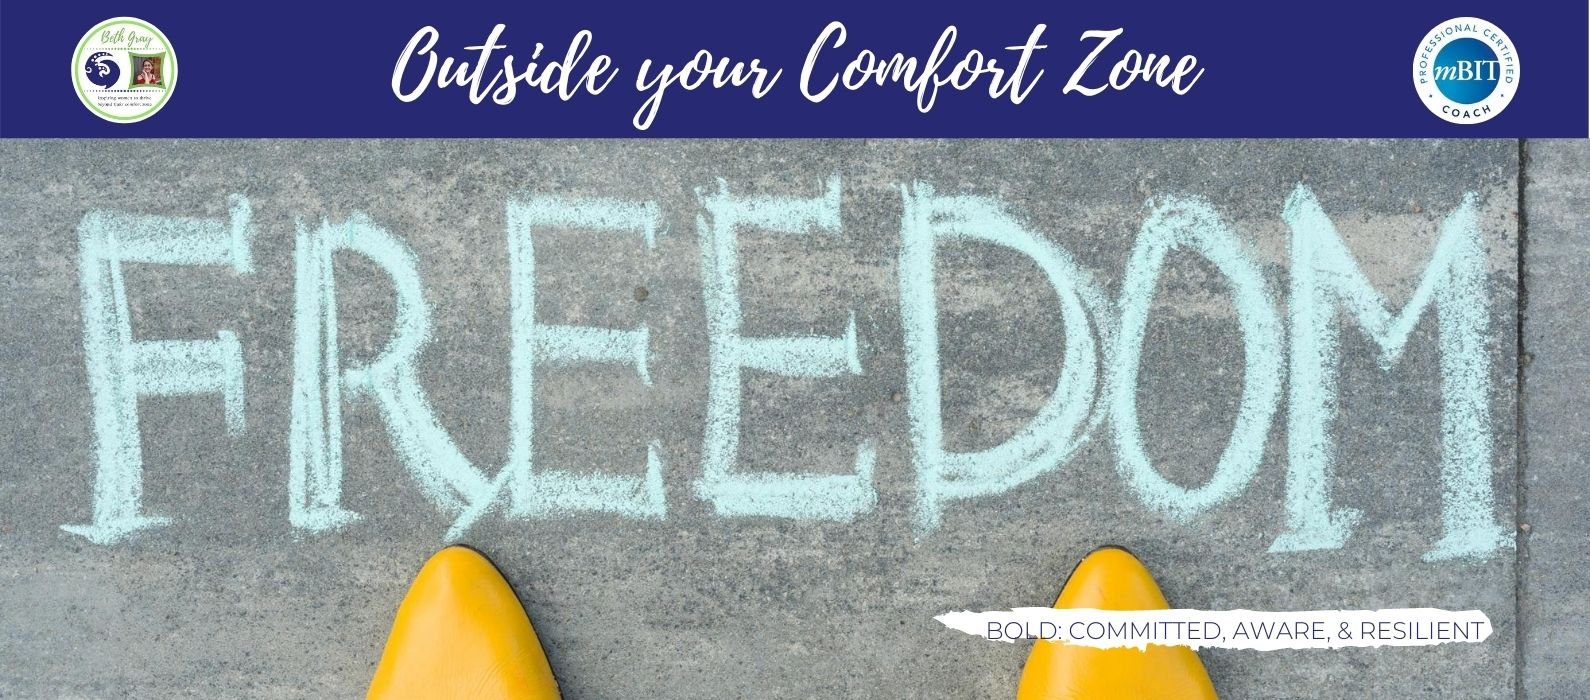 outside your comfort zone, escape the cage, ditch the diet, face the feelings, finding freedom, a diet-free life, human becomings, consequences of staying put